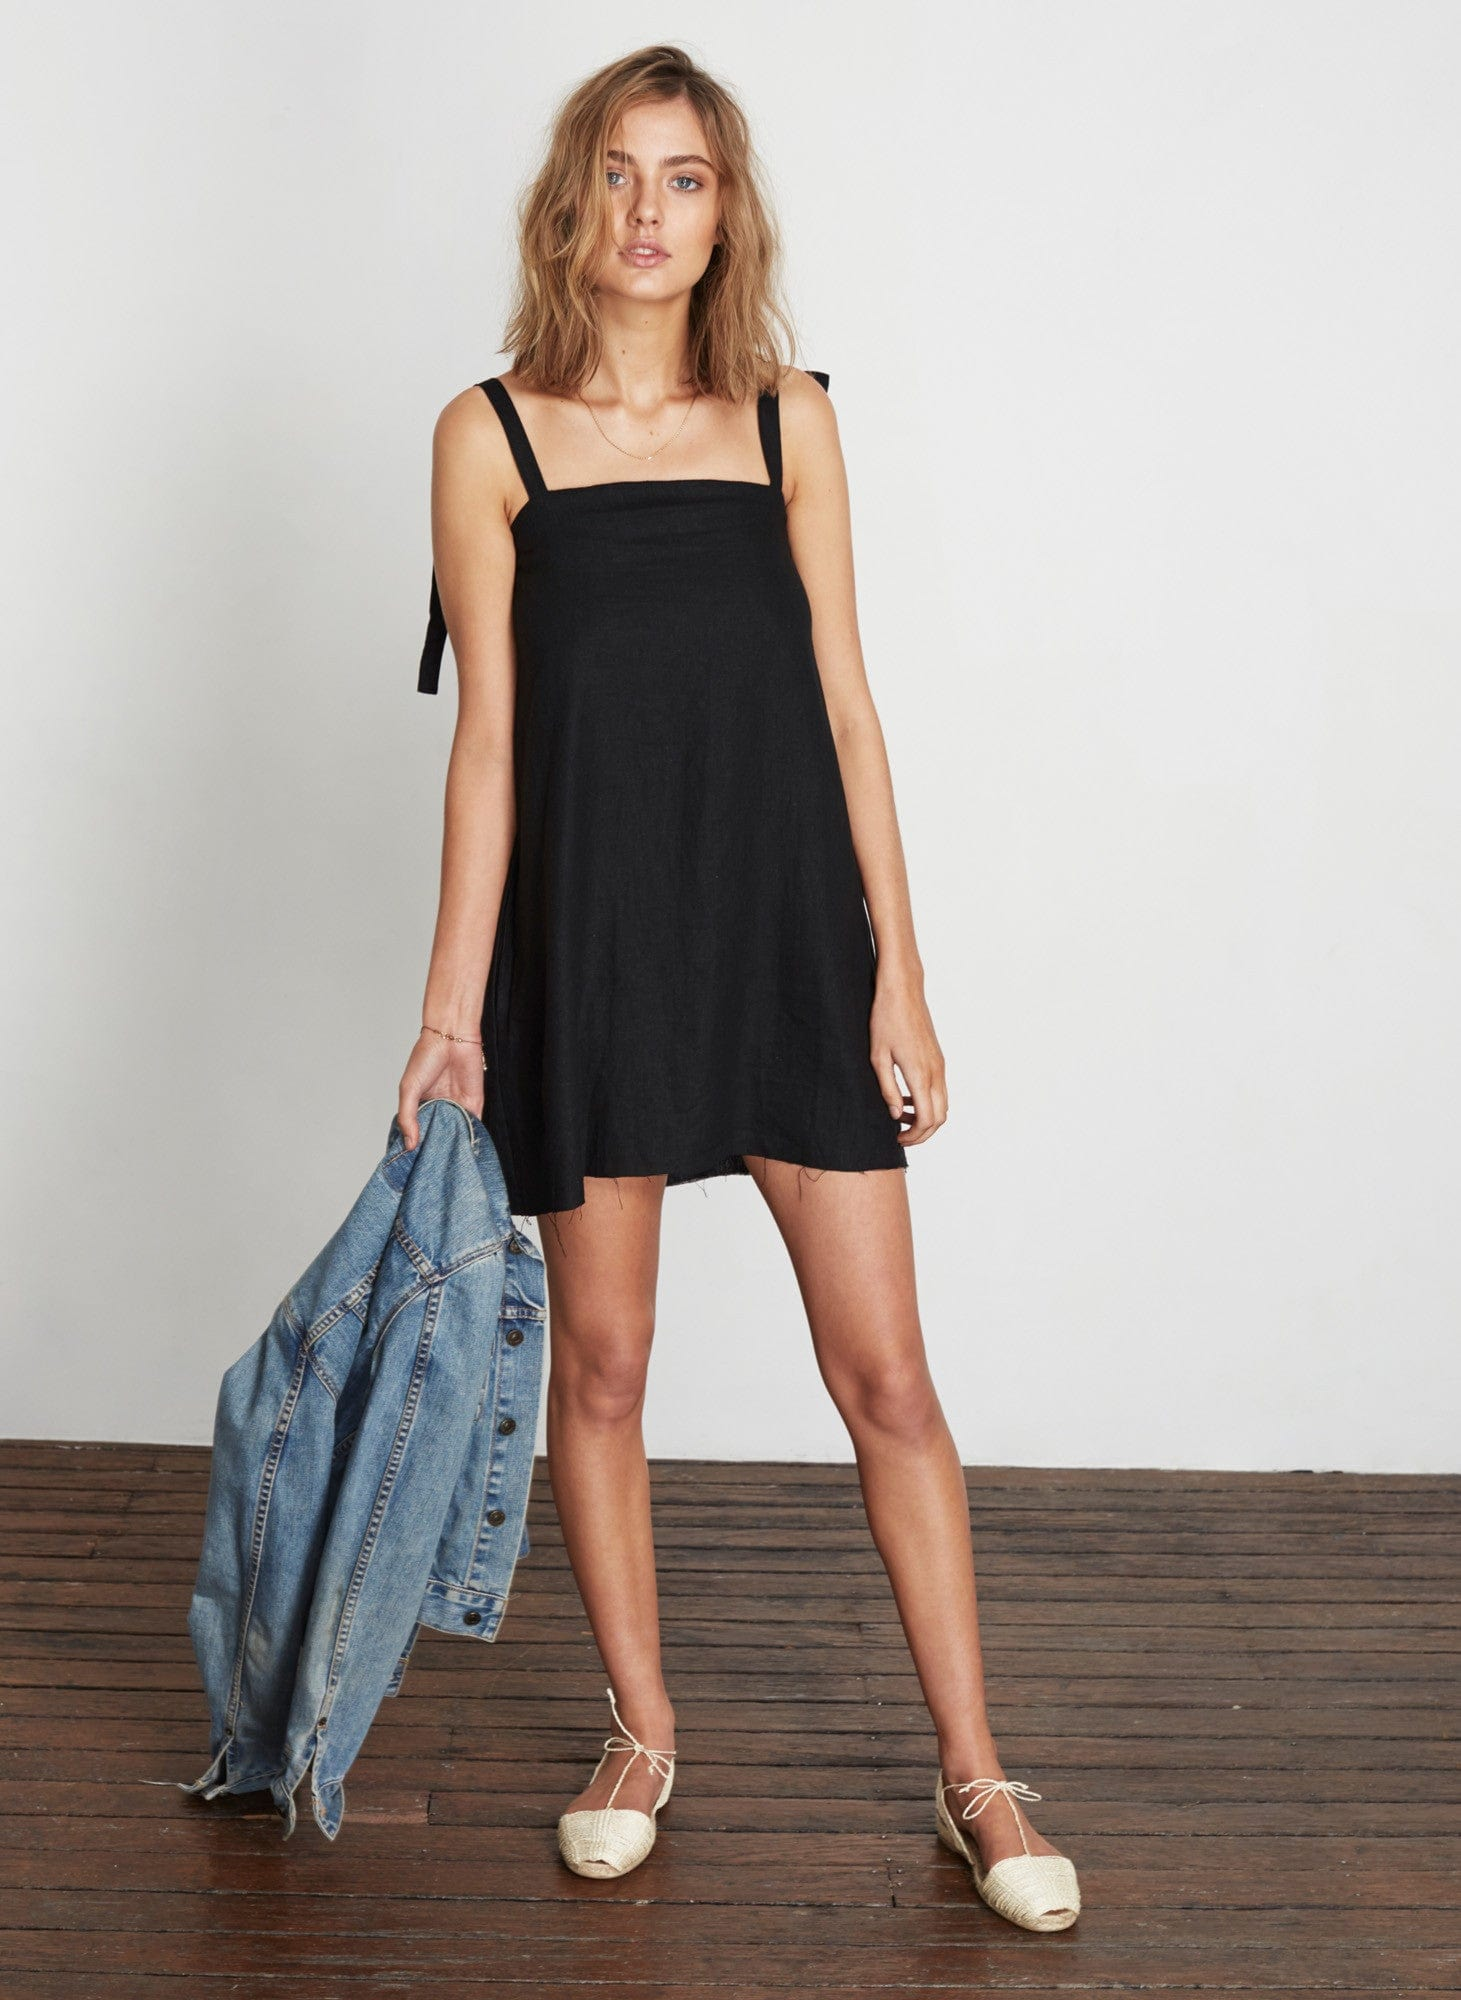 PLAIN BLACK - SAN BLAS DRESS